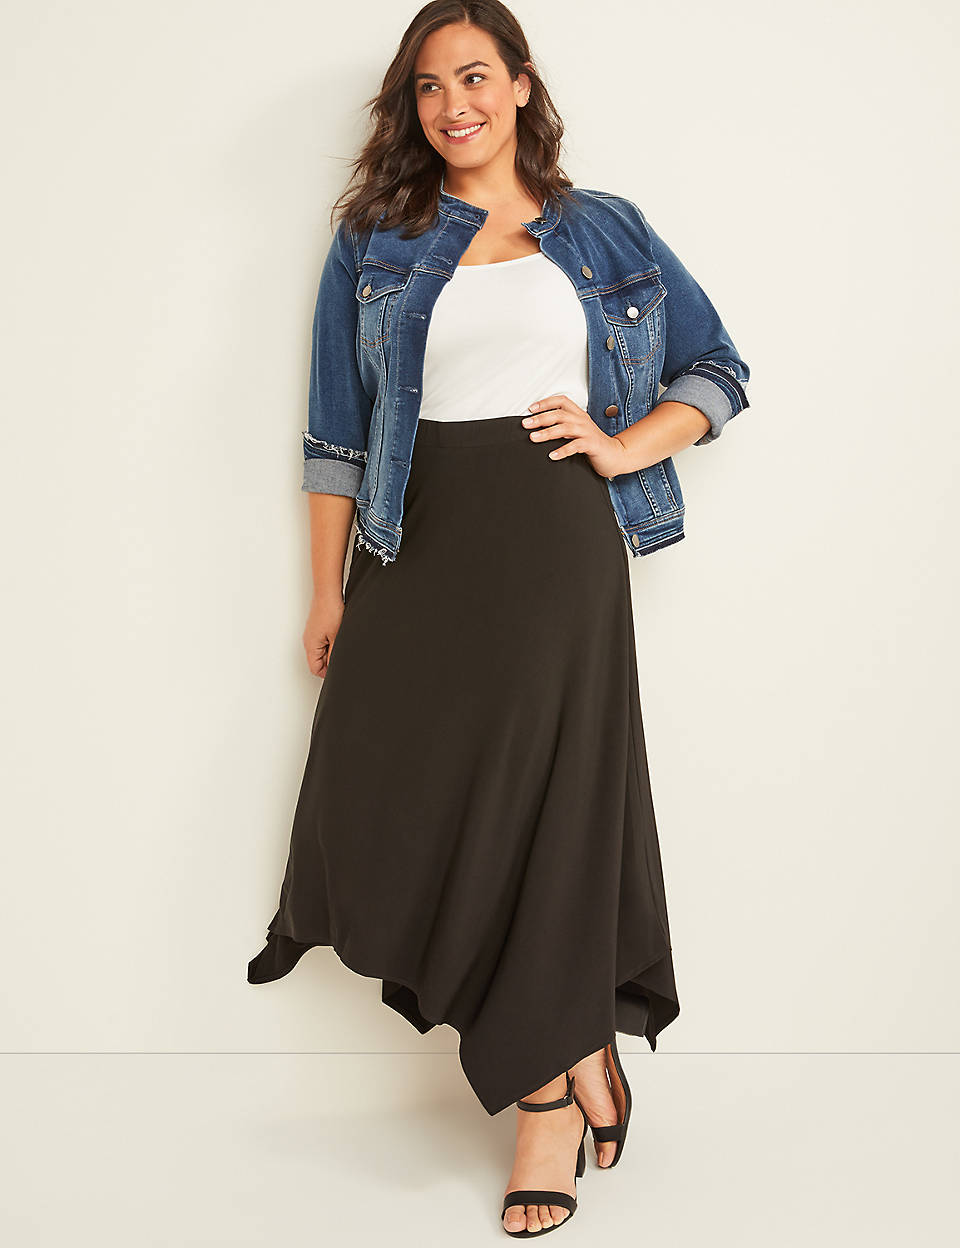 run shoes complete range of articles classic fit Pull-On Maxi Skirt